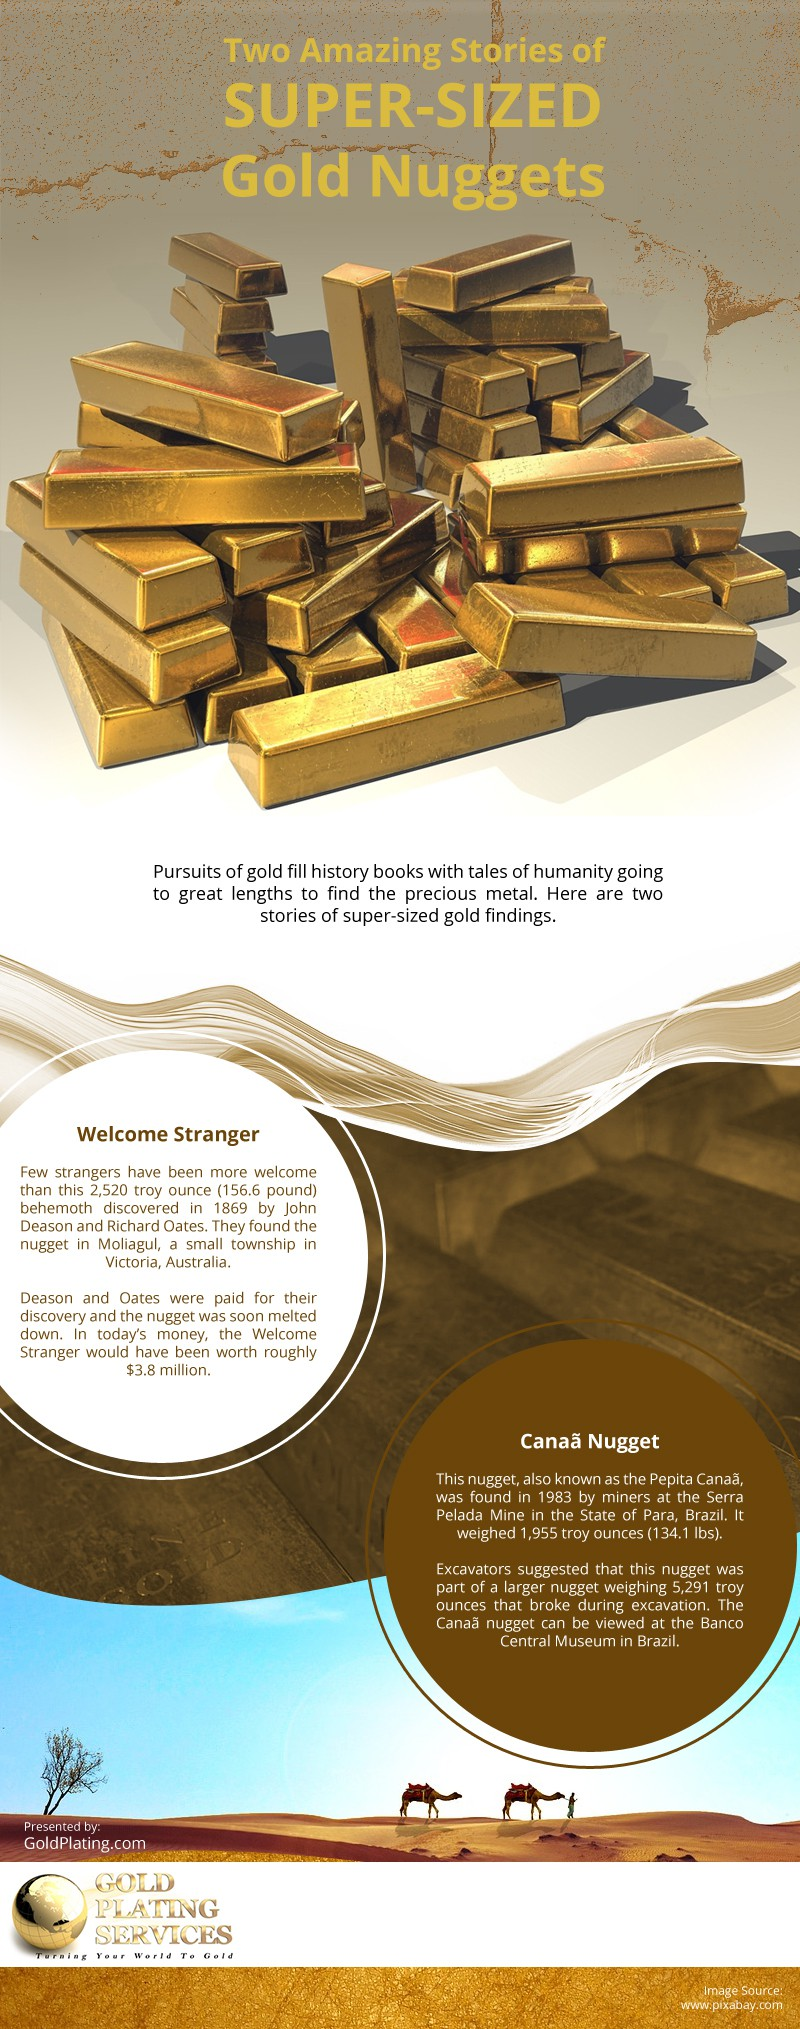 Two Amazing Stories of Super-Sized Gold Nuggets Infographic